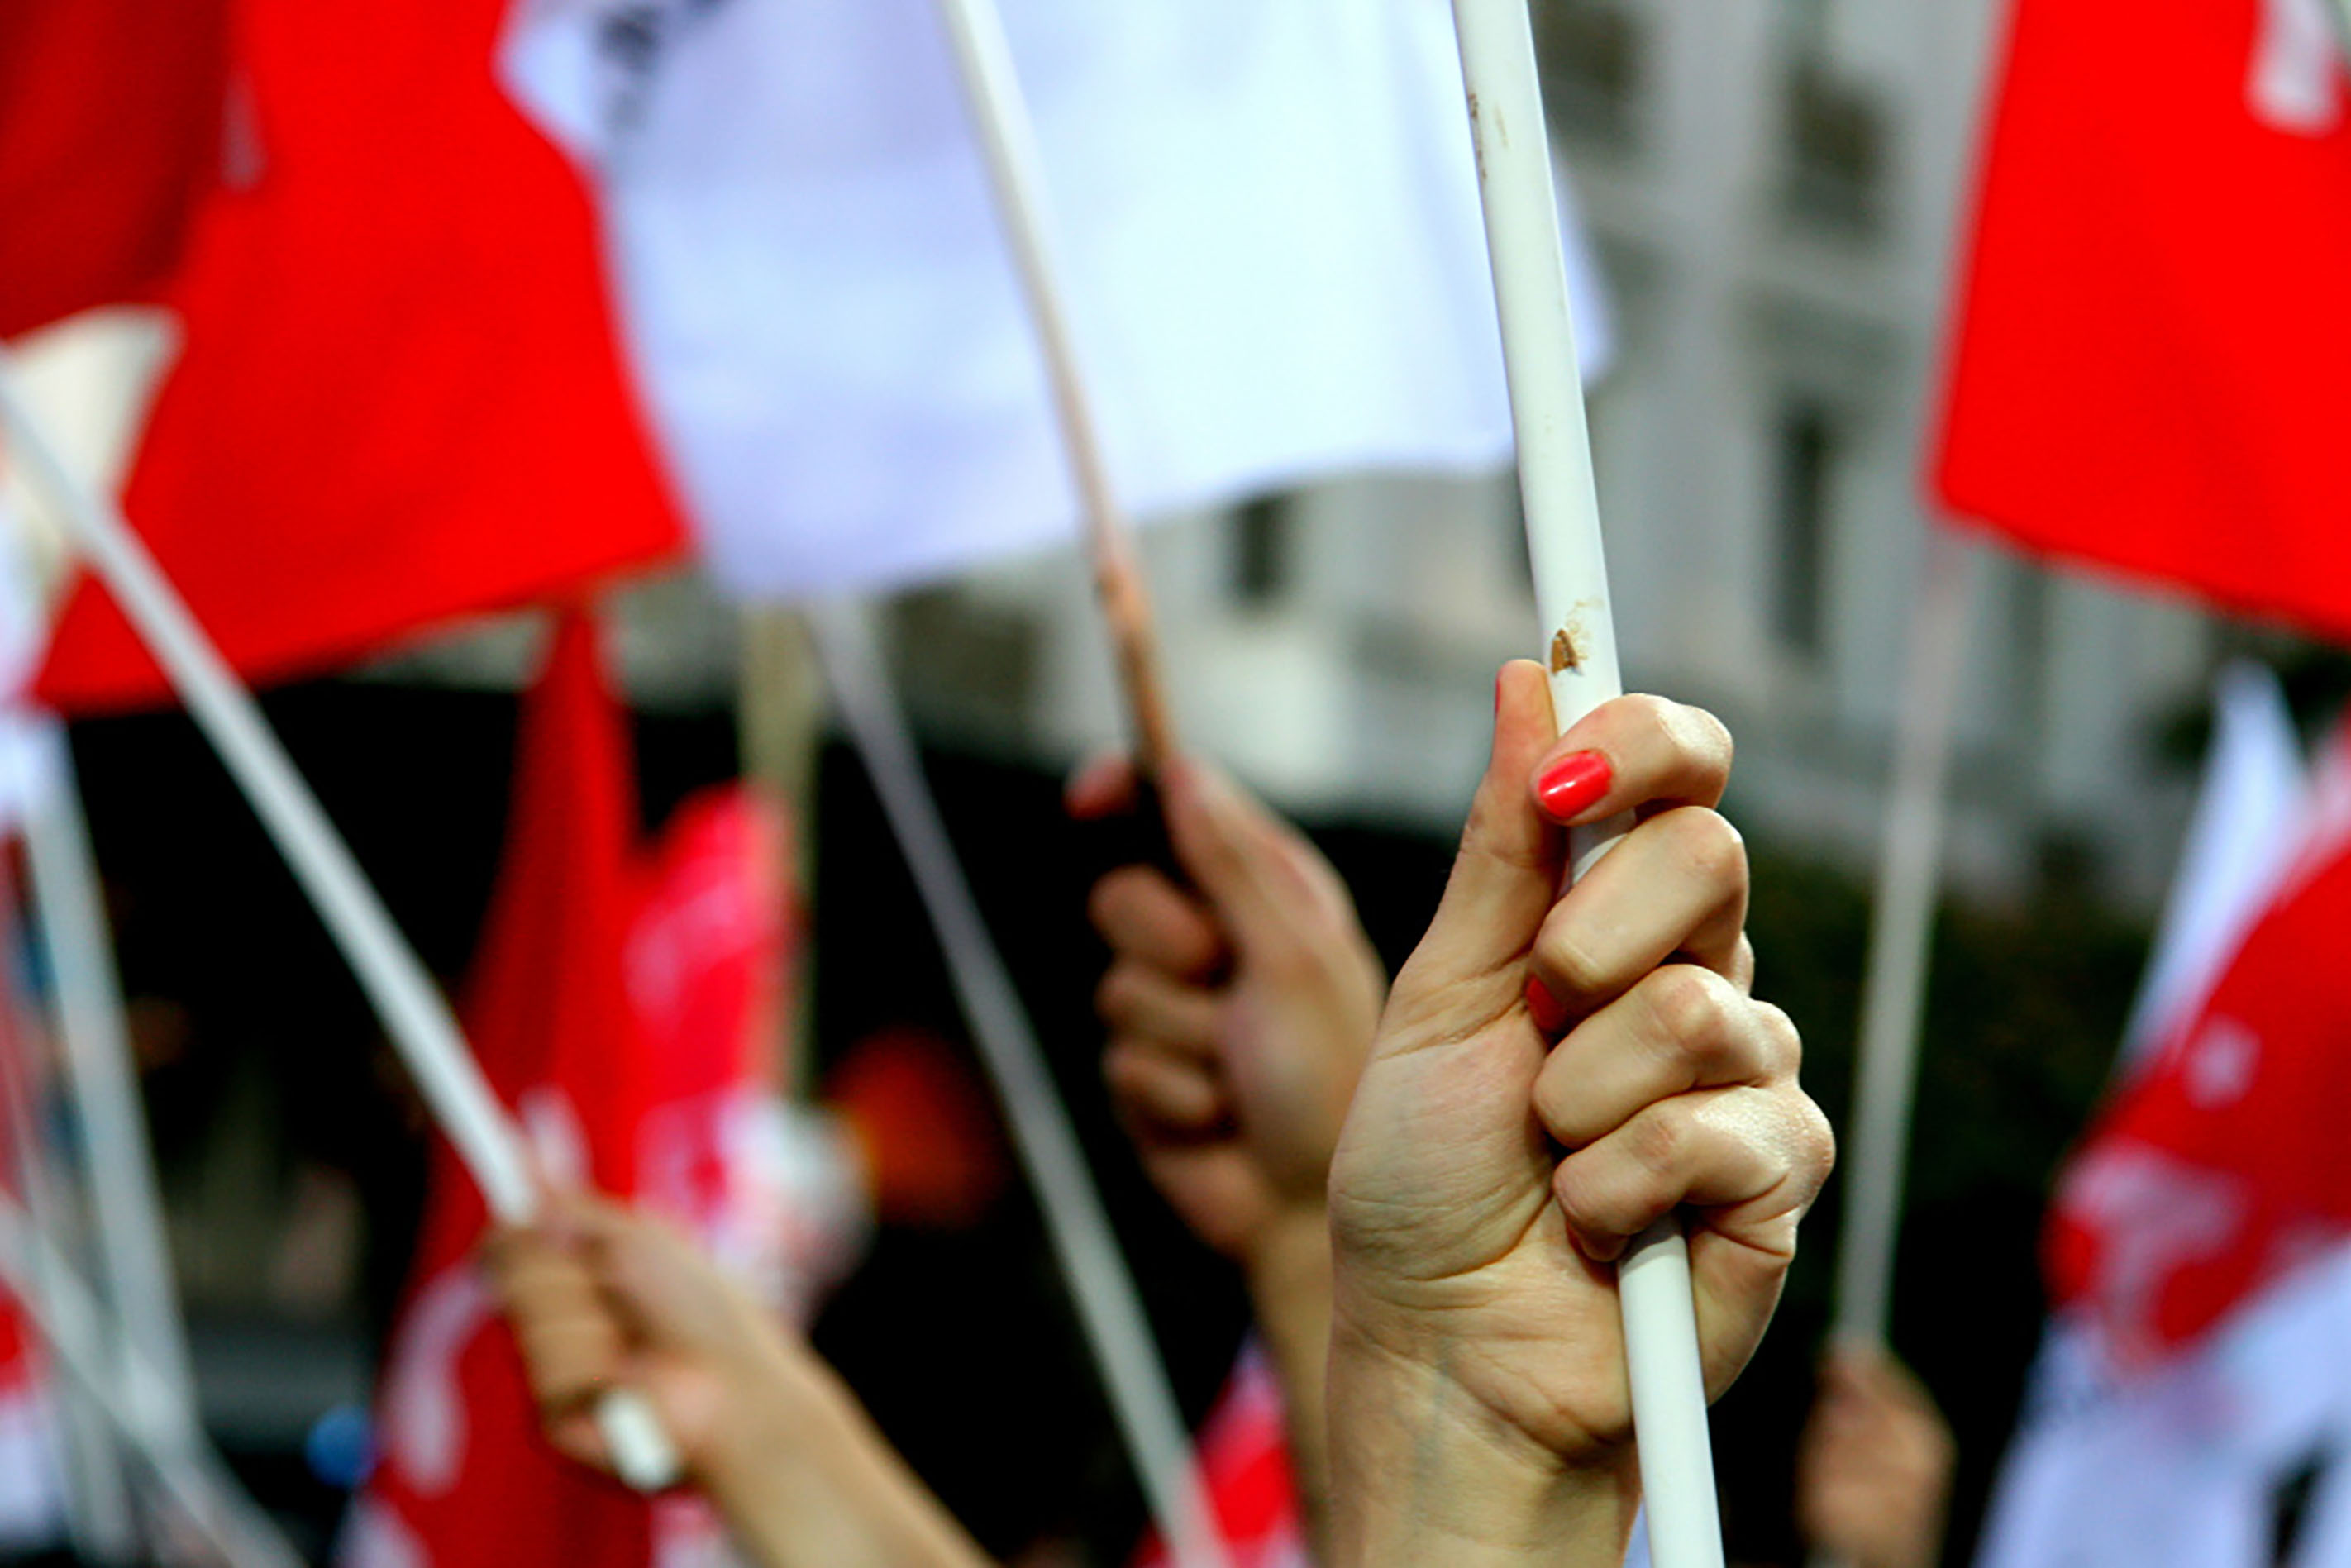 Syriza_flags-